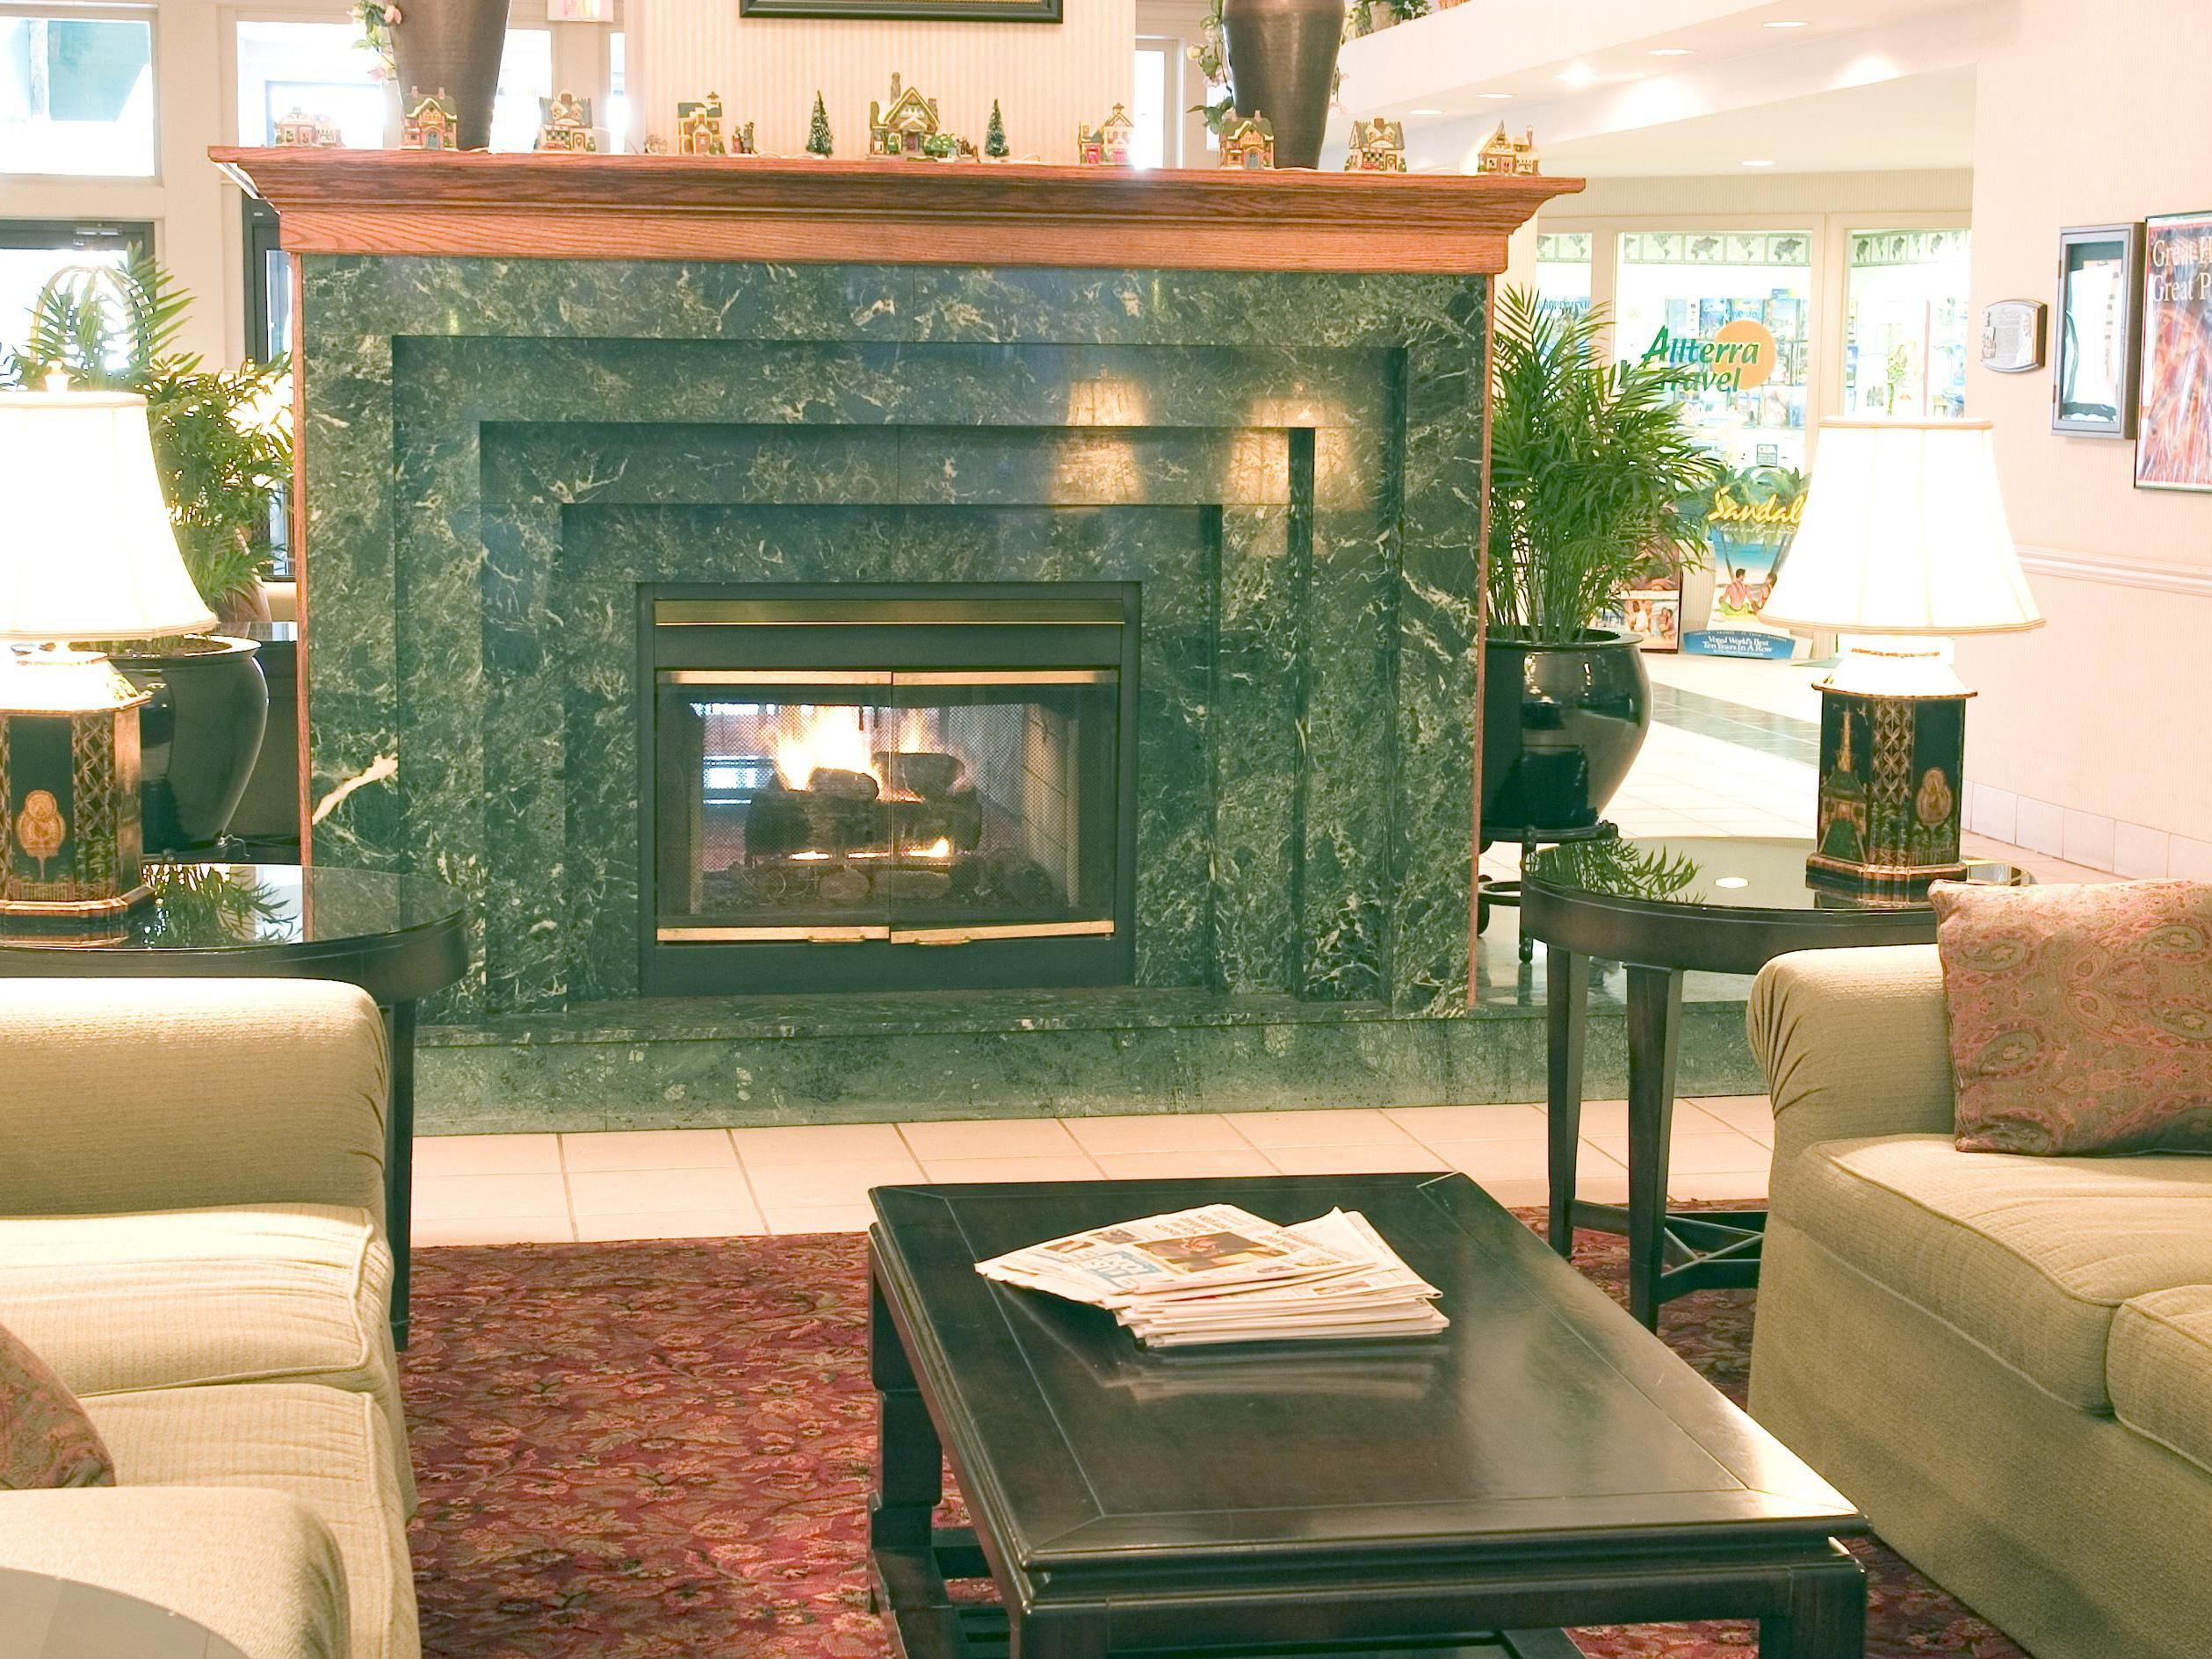 Sit and relax in front of our cozy fireplace